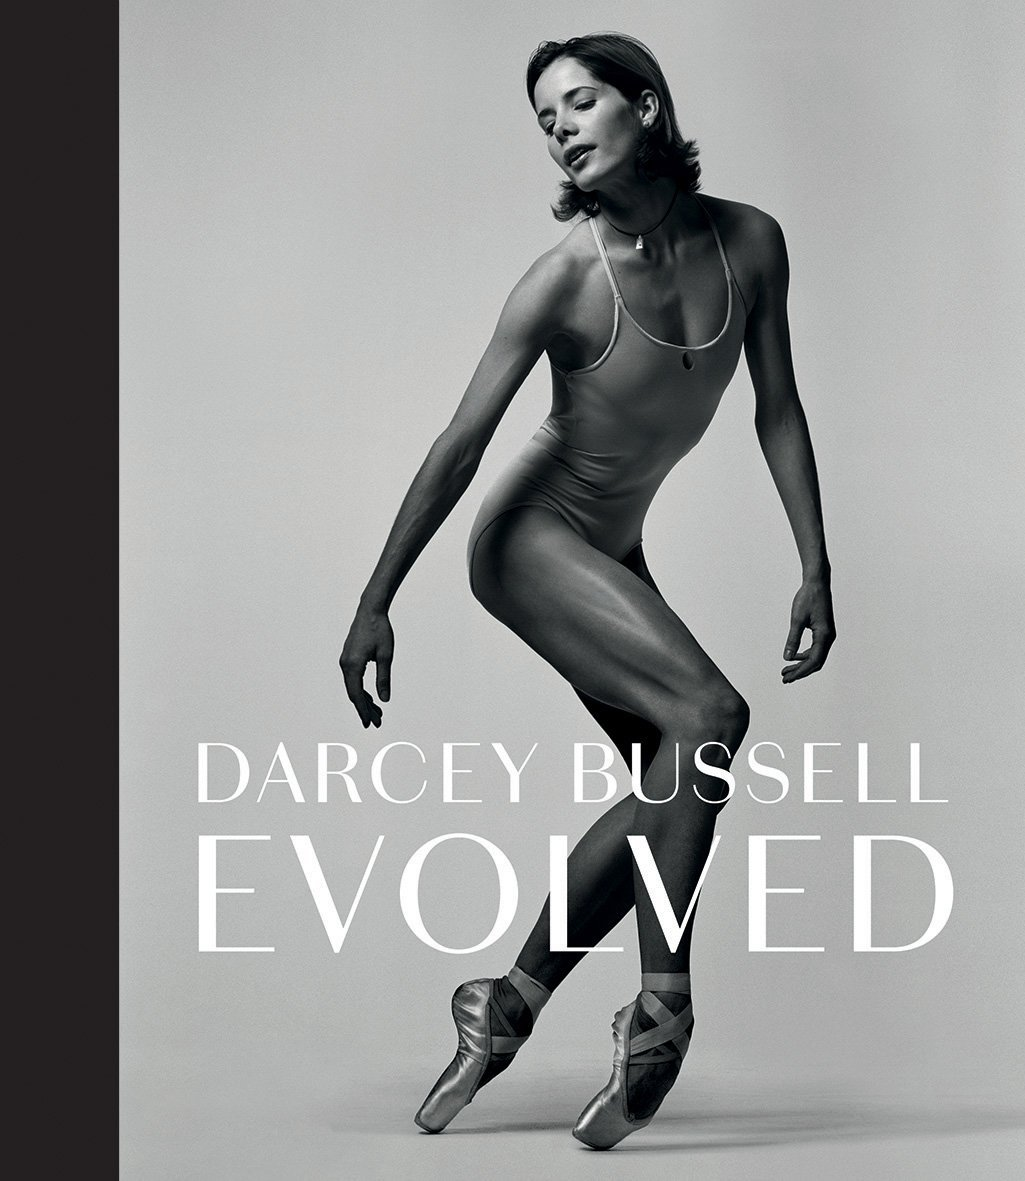 Darcey Bussell's Evolved